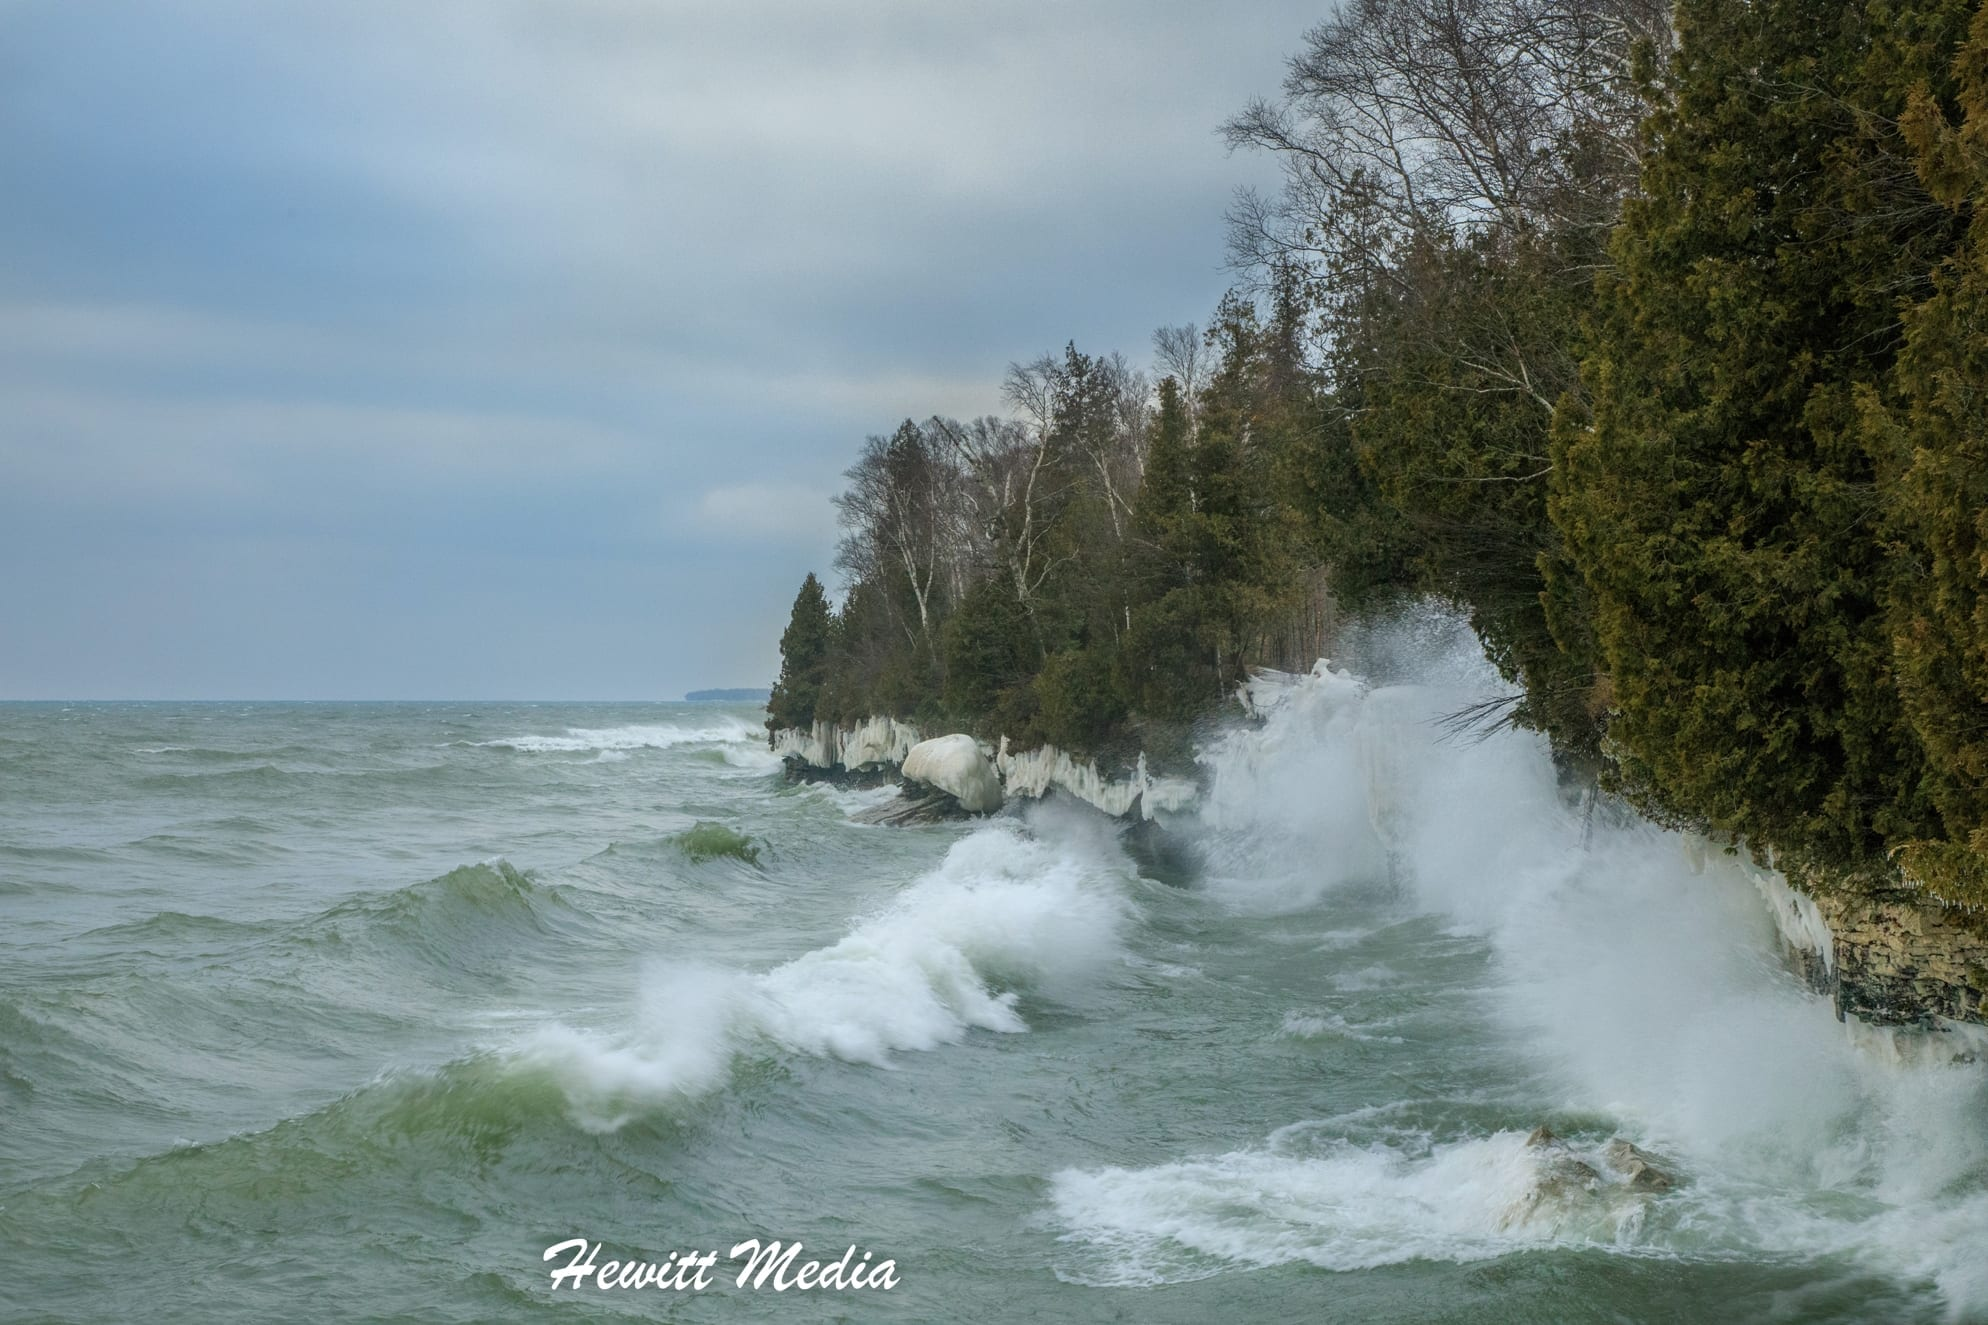 frigid waves crash along the shoreline forming ice and spray on the rocks and edge of the forest